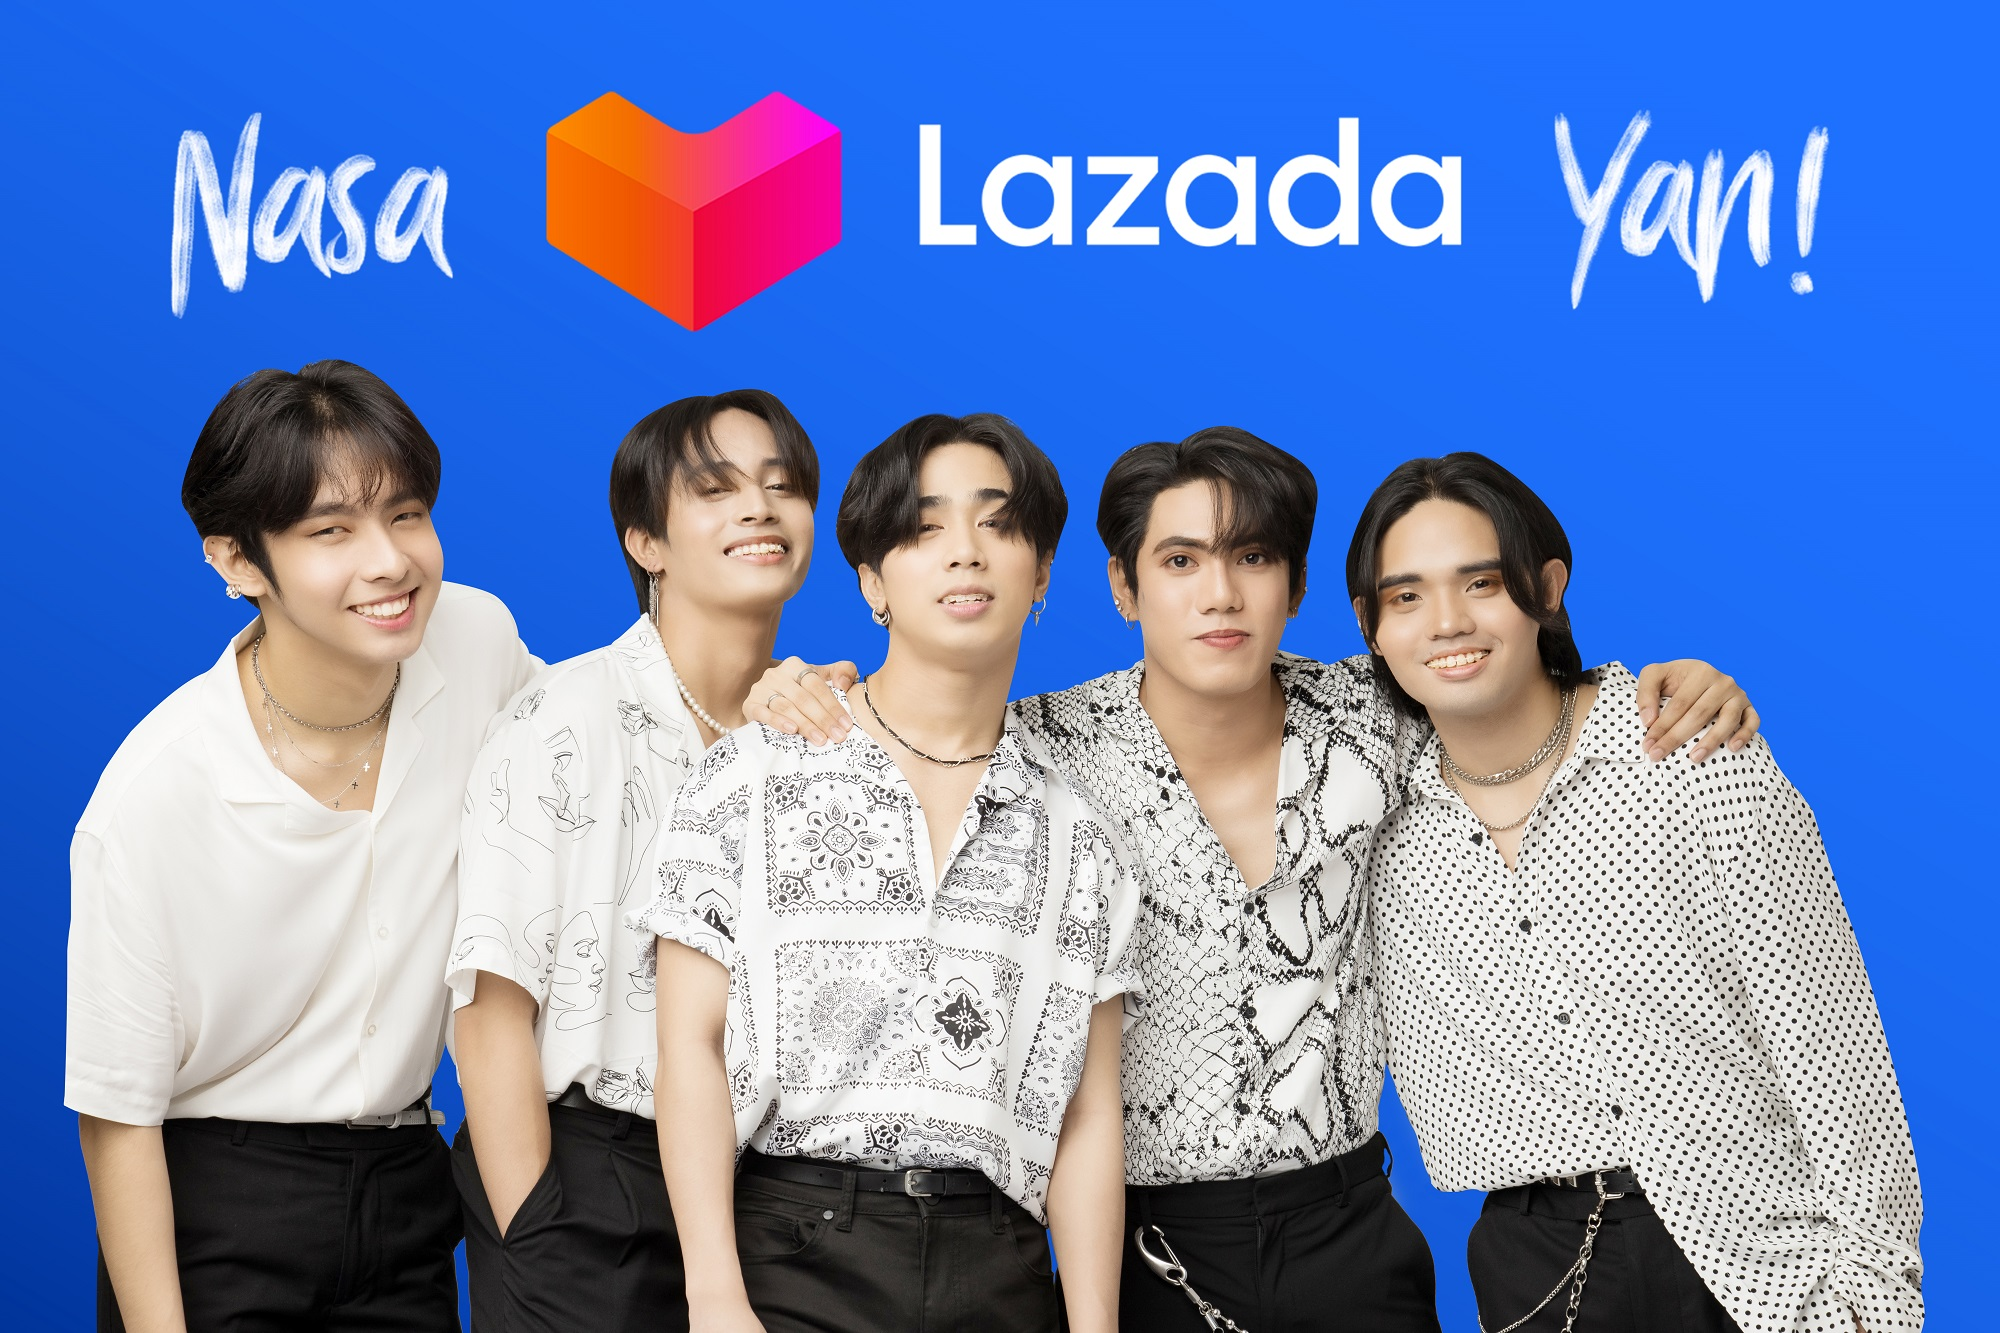 SB19 Joins Lazada Philippines as New Brand Ambassadors of #NasaLazadaYan!